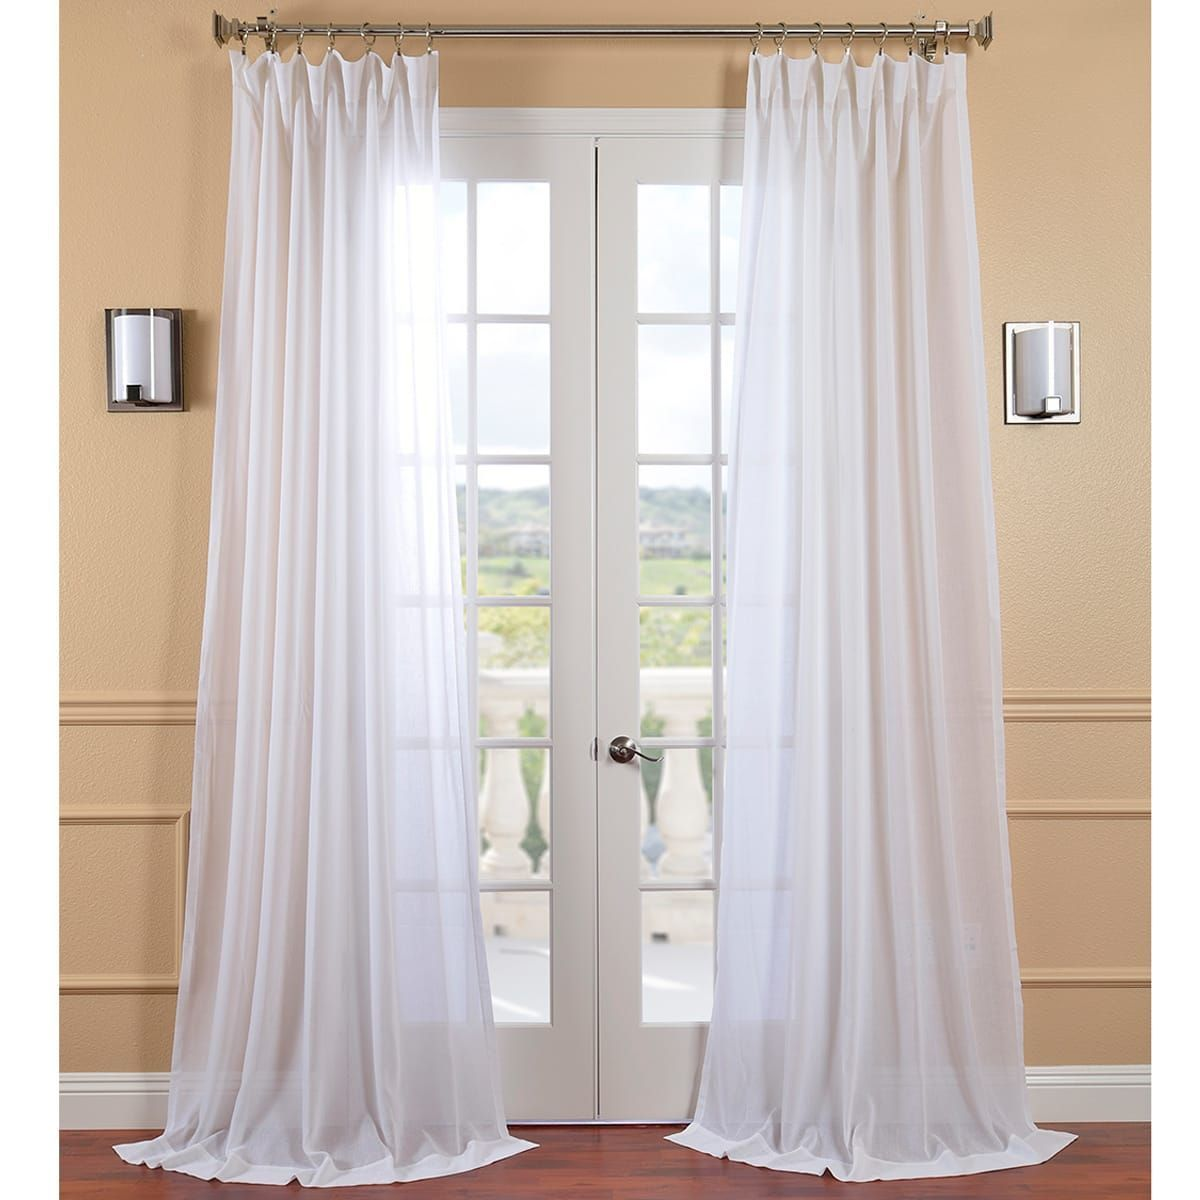 Exclusive Fabrics White Orchid Faux Linen Sheer Curtain Panel 108 Inch Size 50 X 108 White Sheer Curtains Sheer Curtain Panels Half Price Drapes